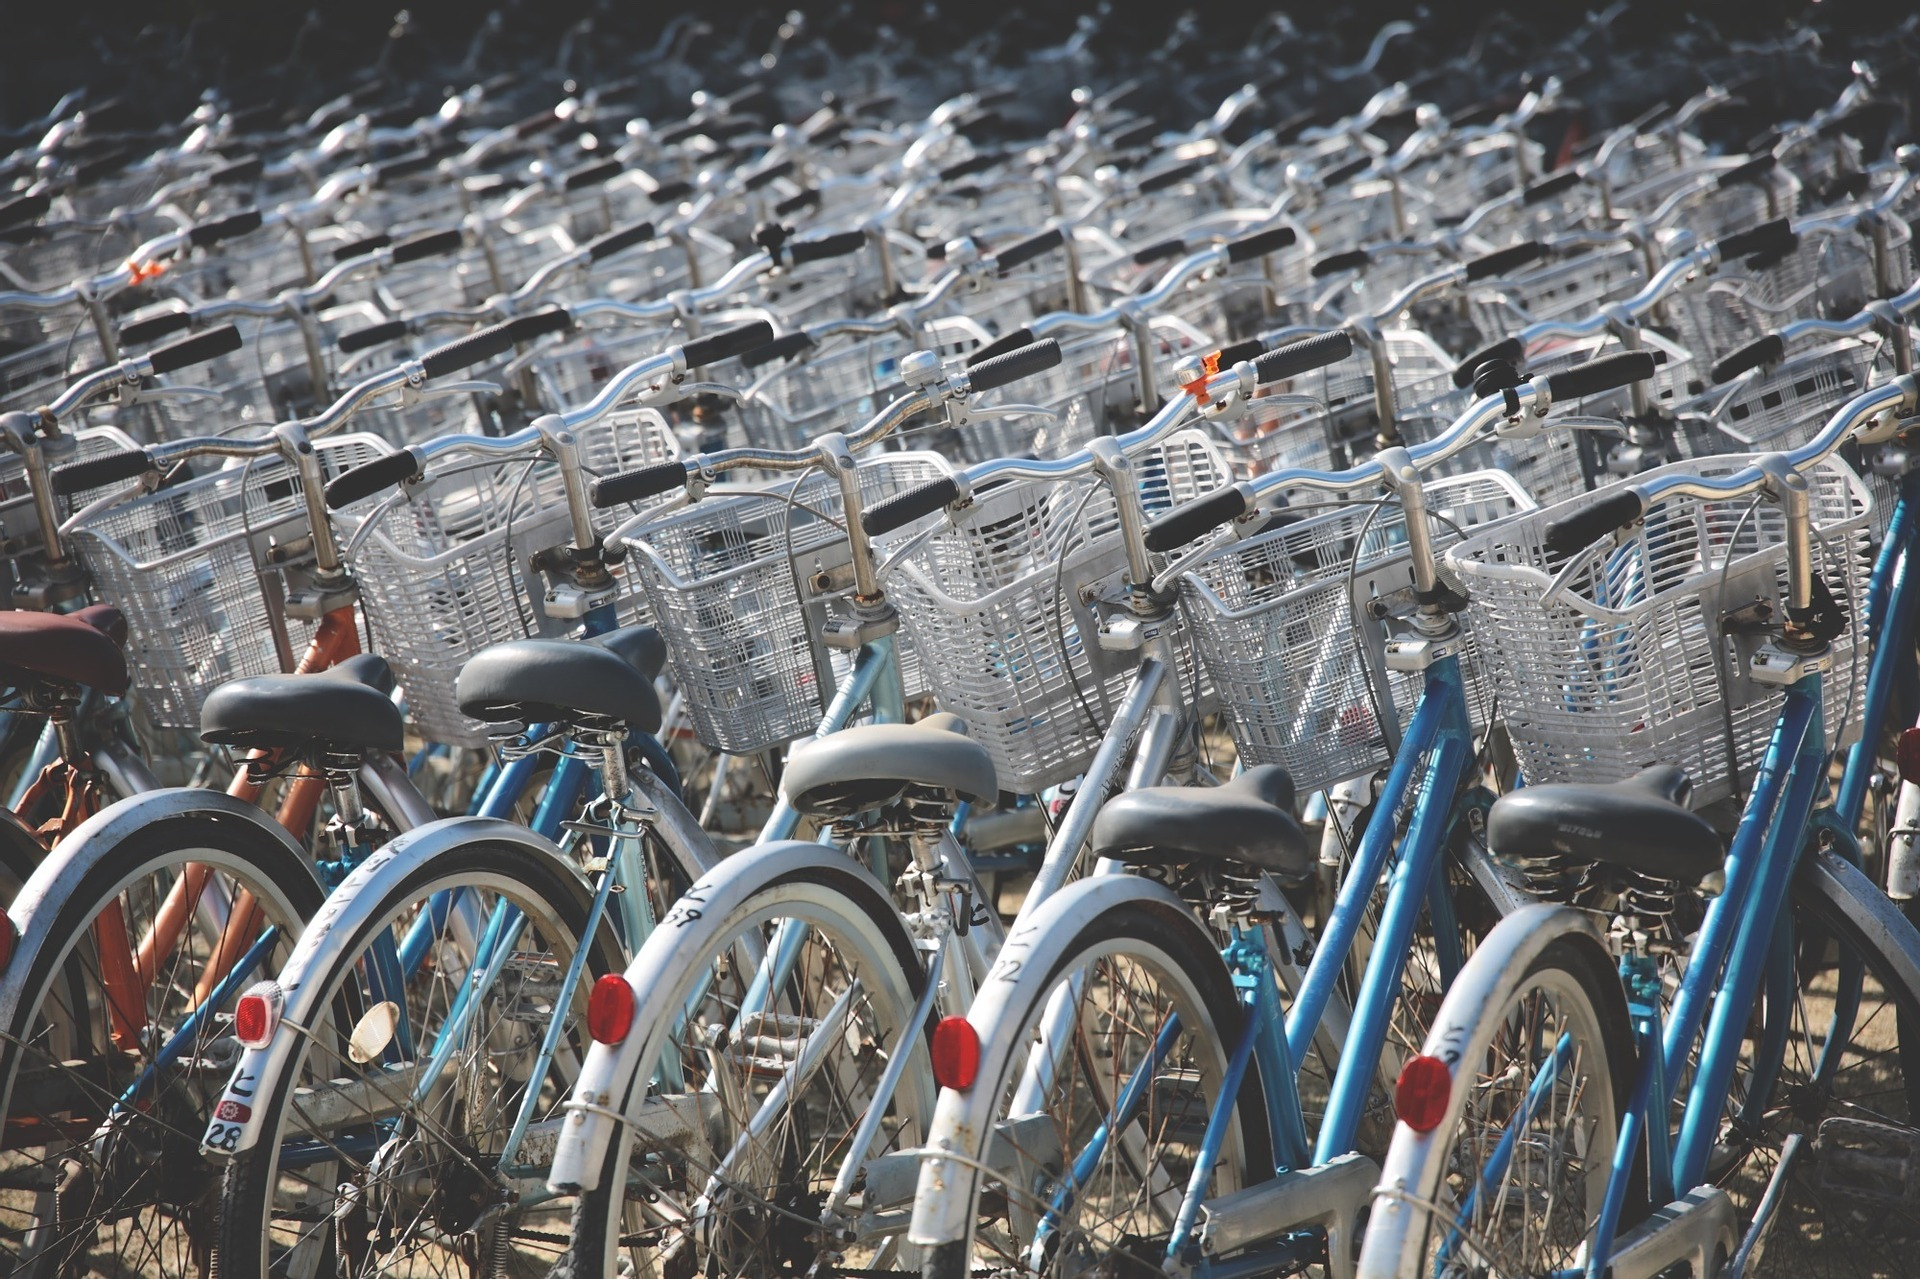 bicycles-1246597_1920